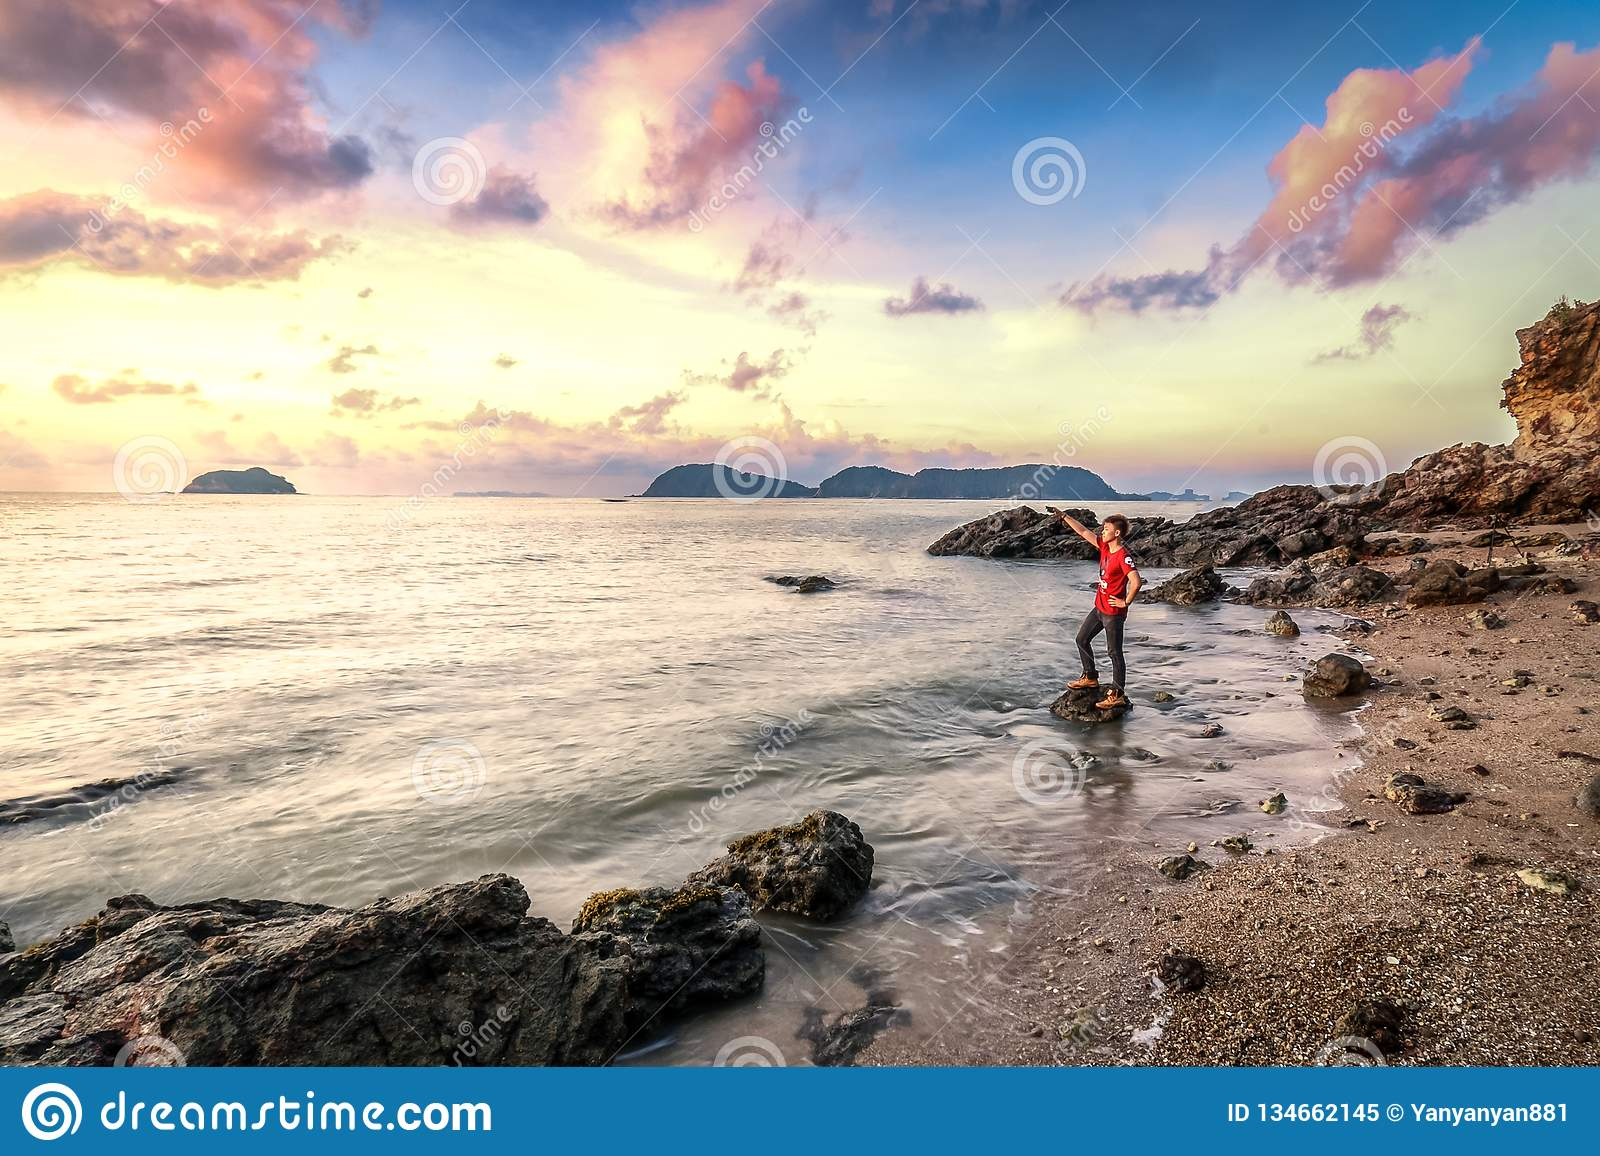 Lifestyle image of happy person at secluded beach